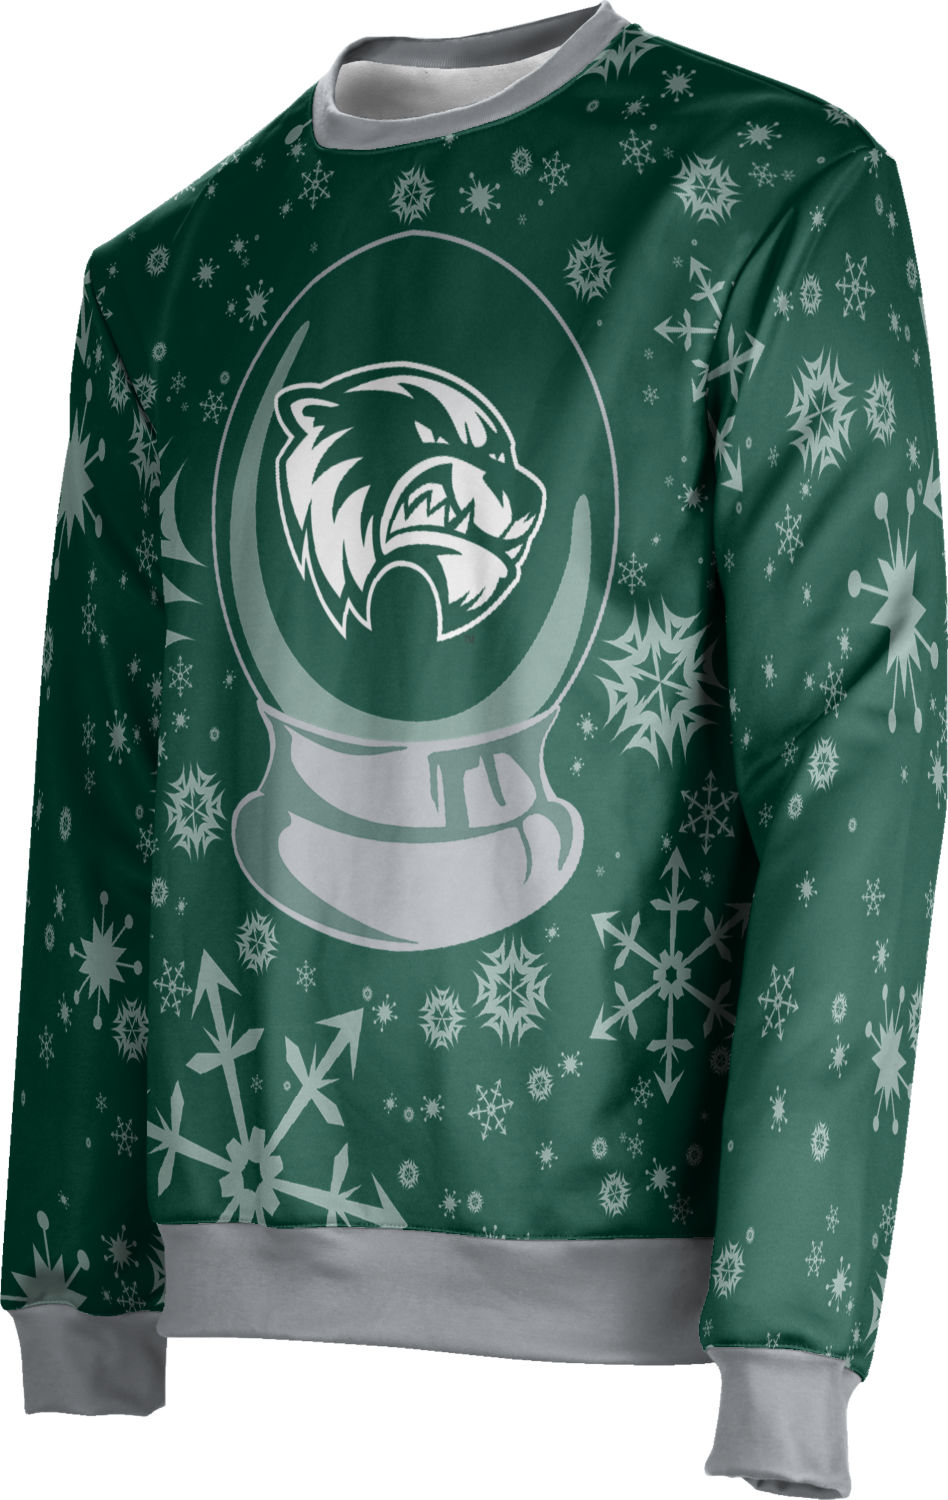 Utah Valley University: Unisex Ugly Holiday Sweater - Snow Globe